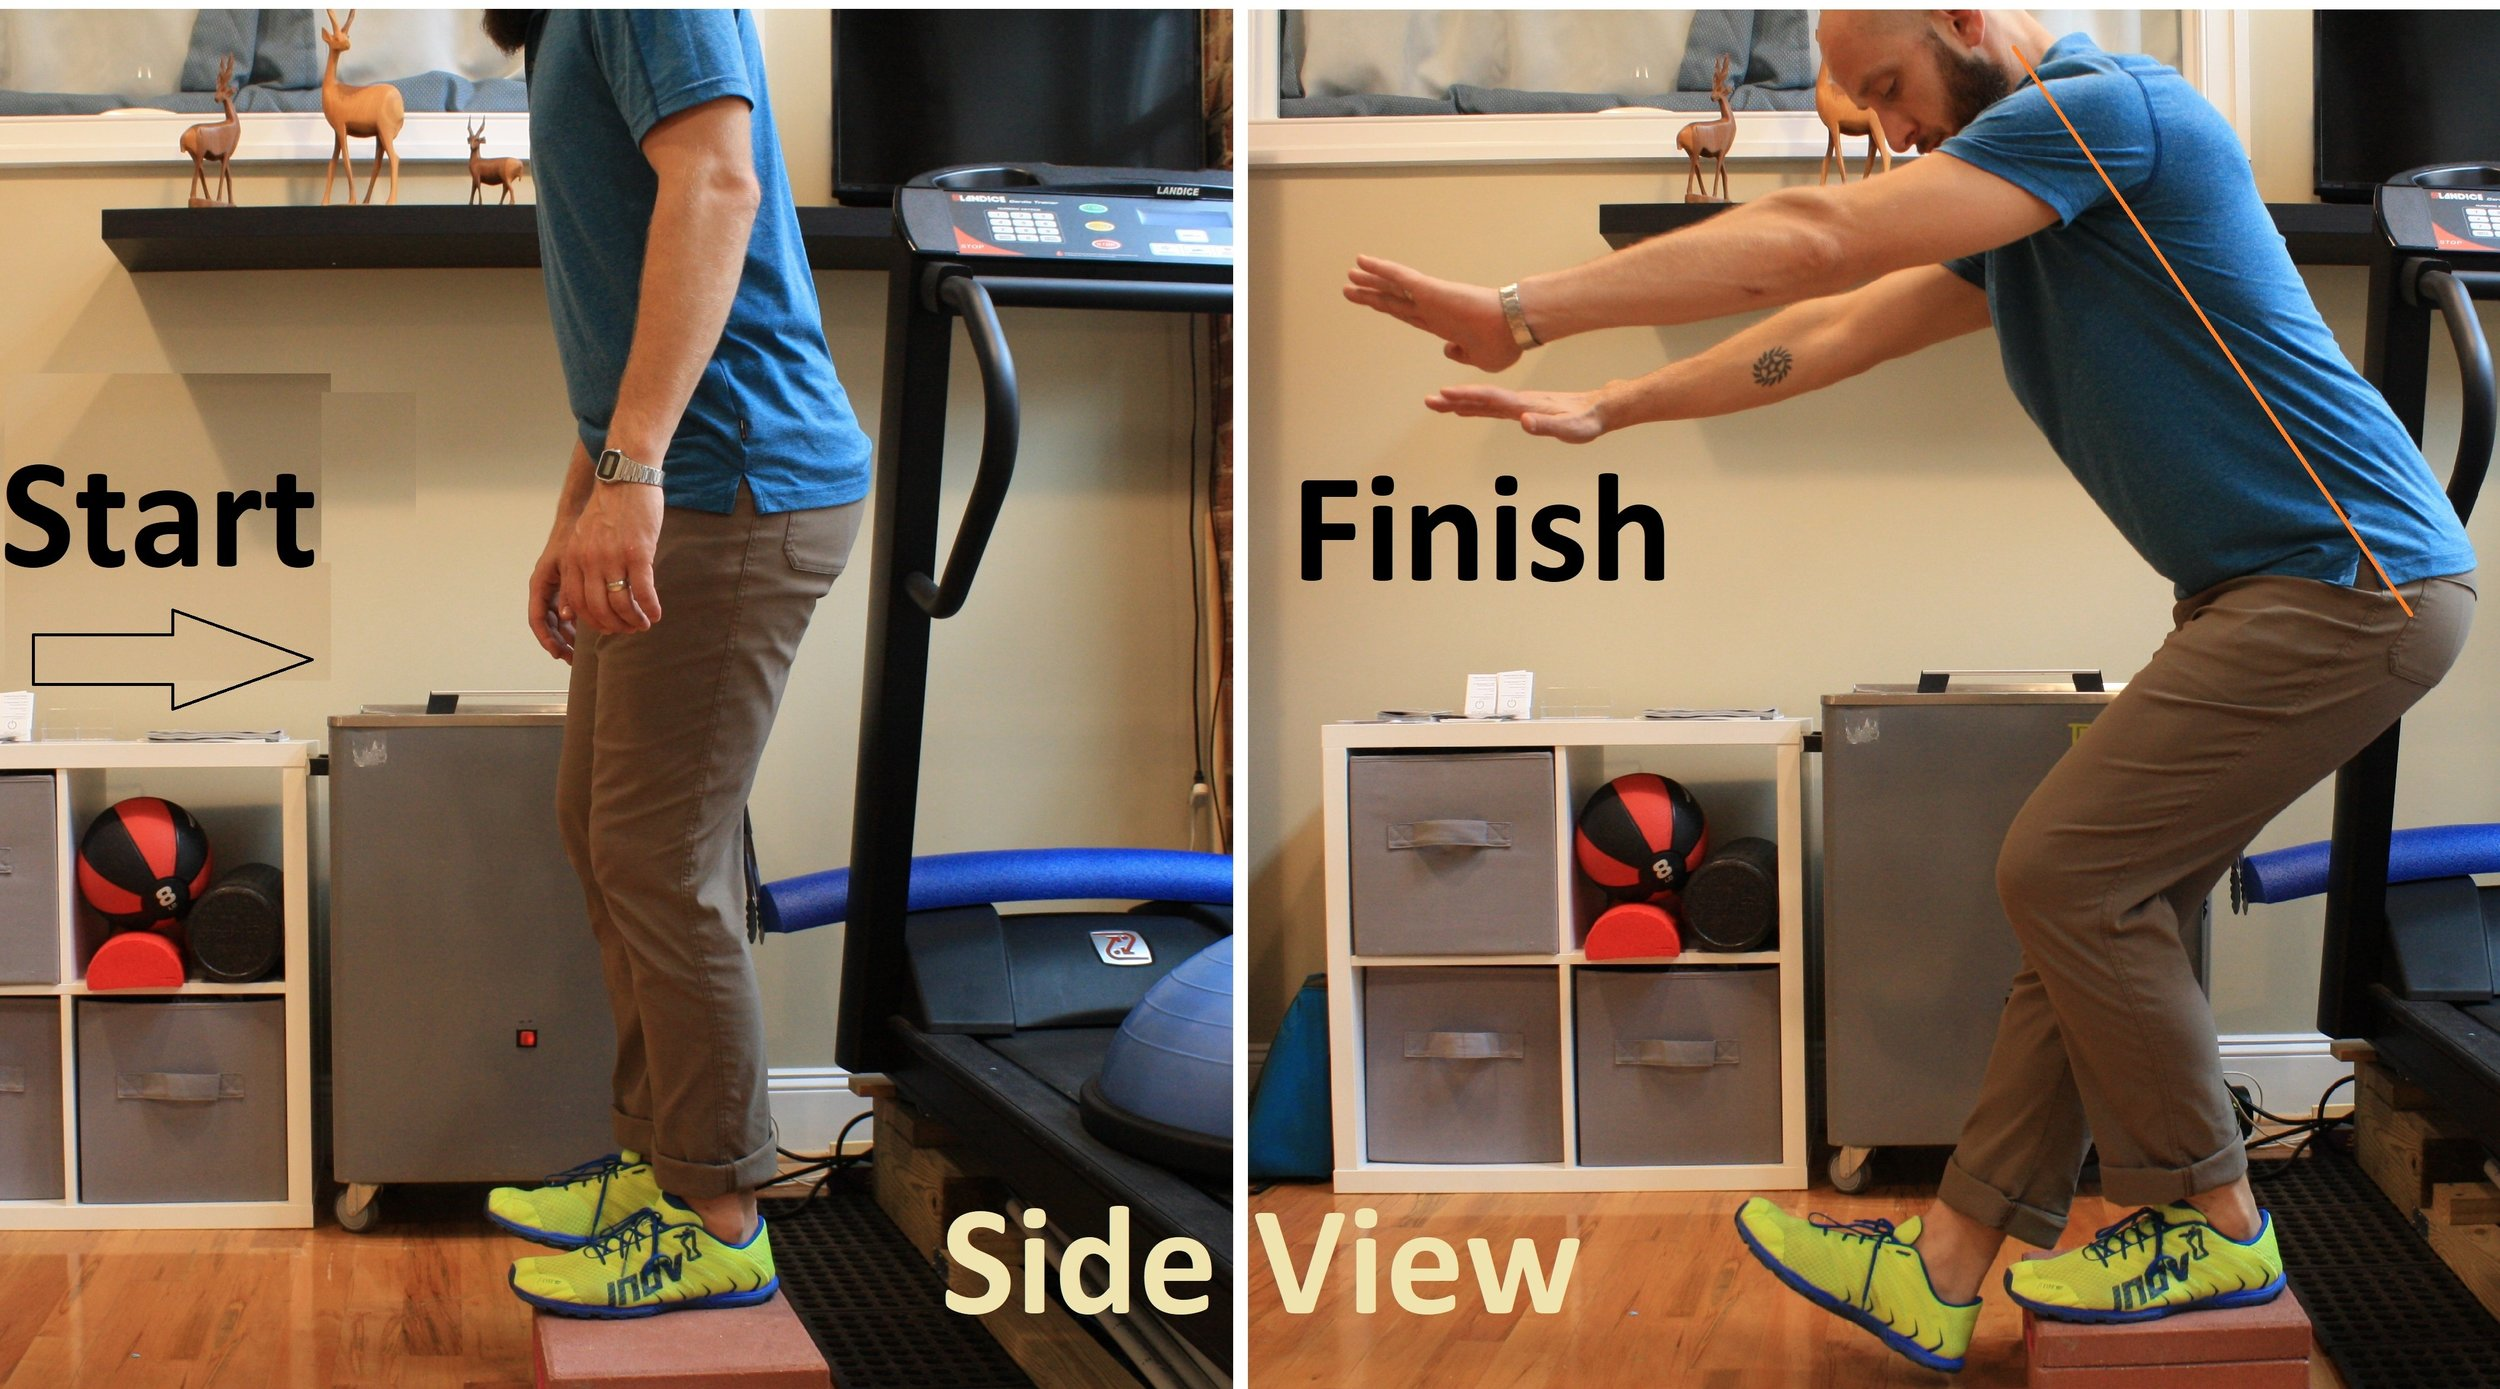 Forward limb single leg squats can better target the quads, but will be more limited by ankle mobility.